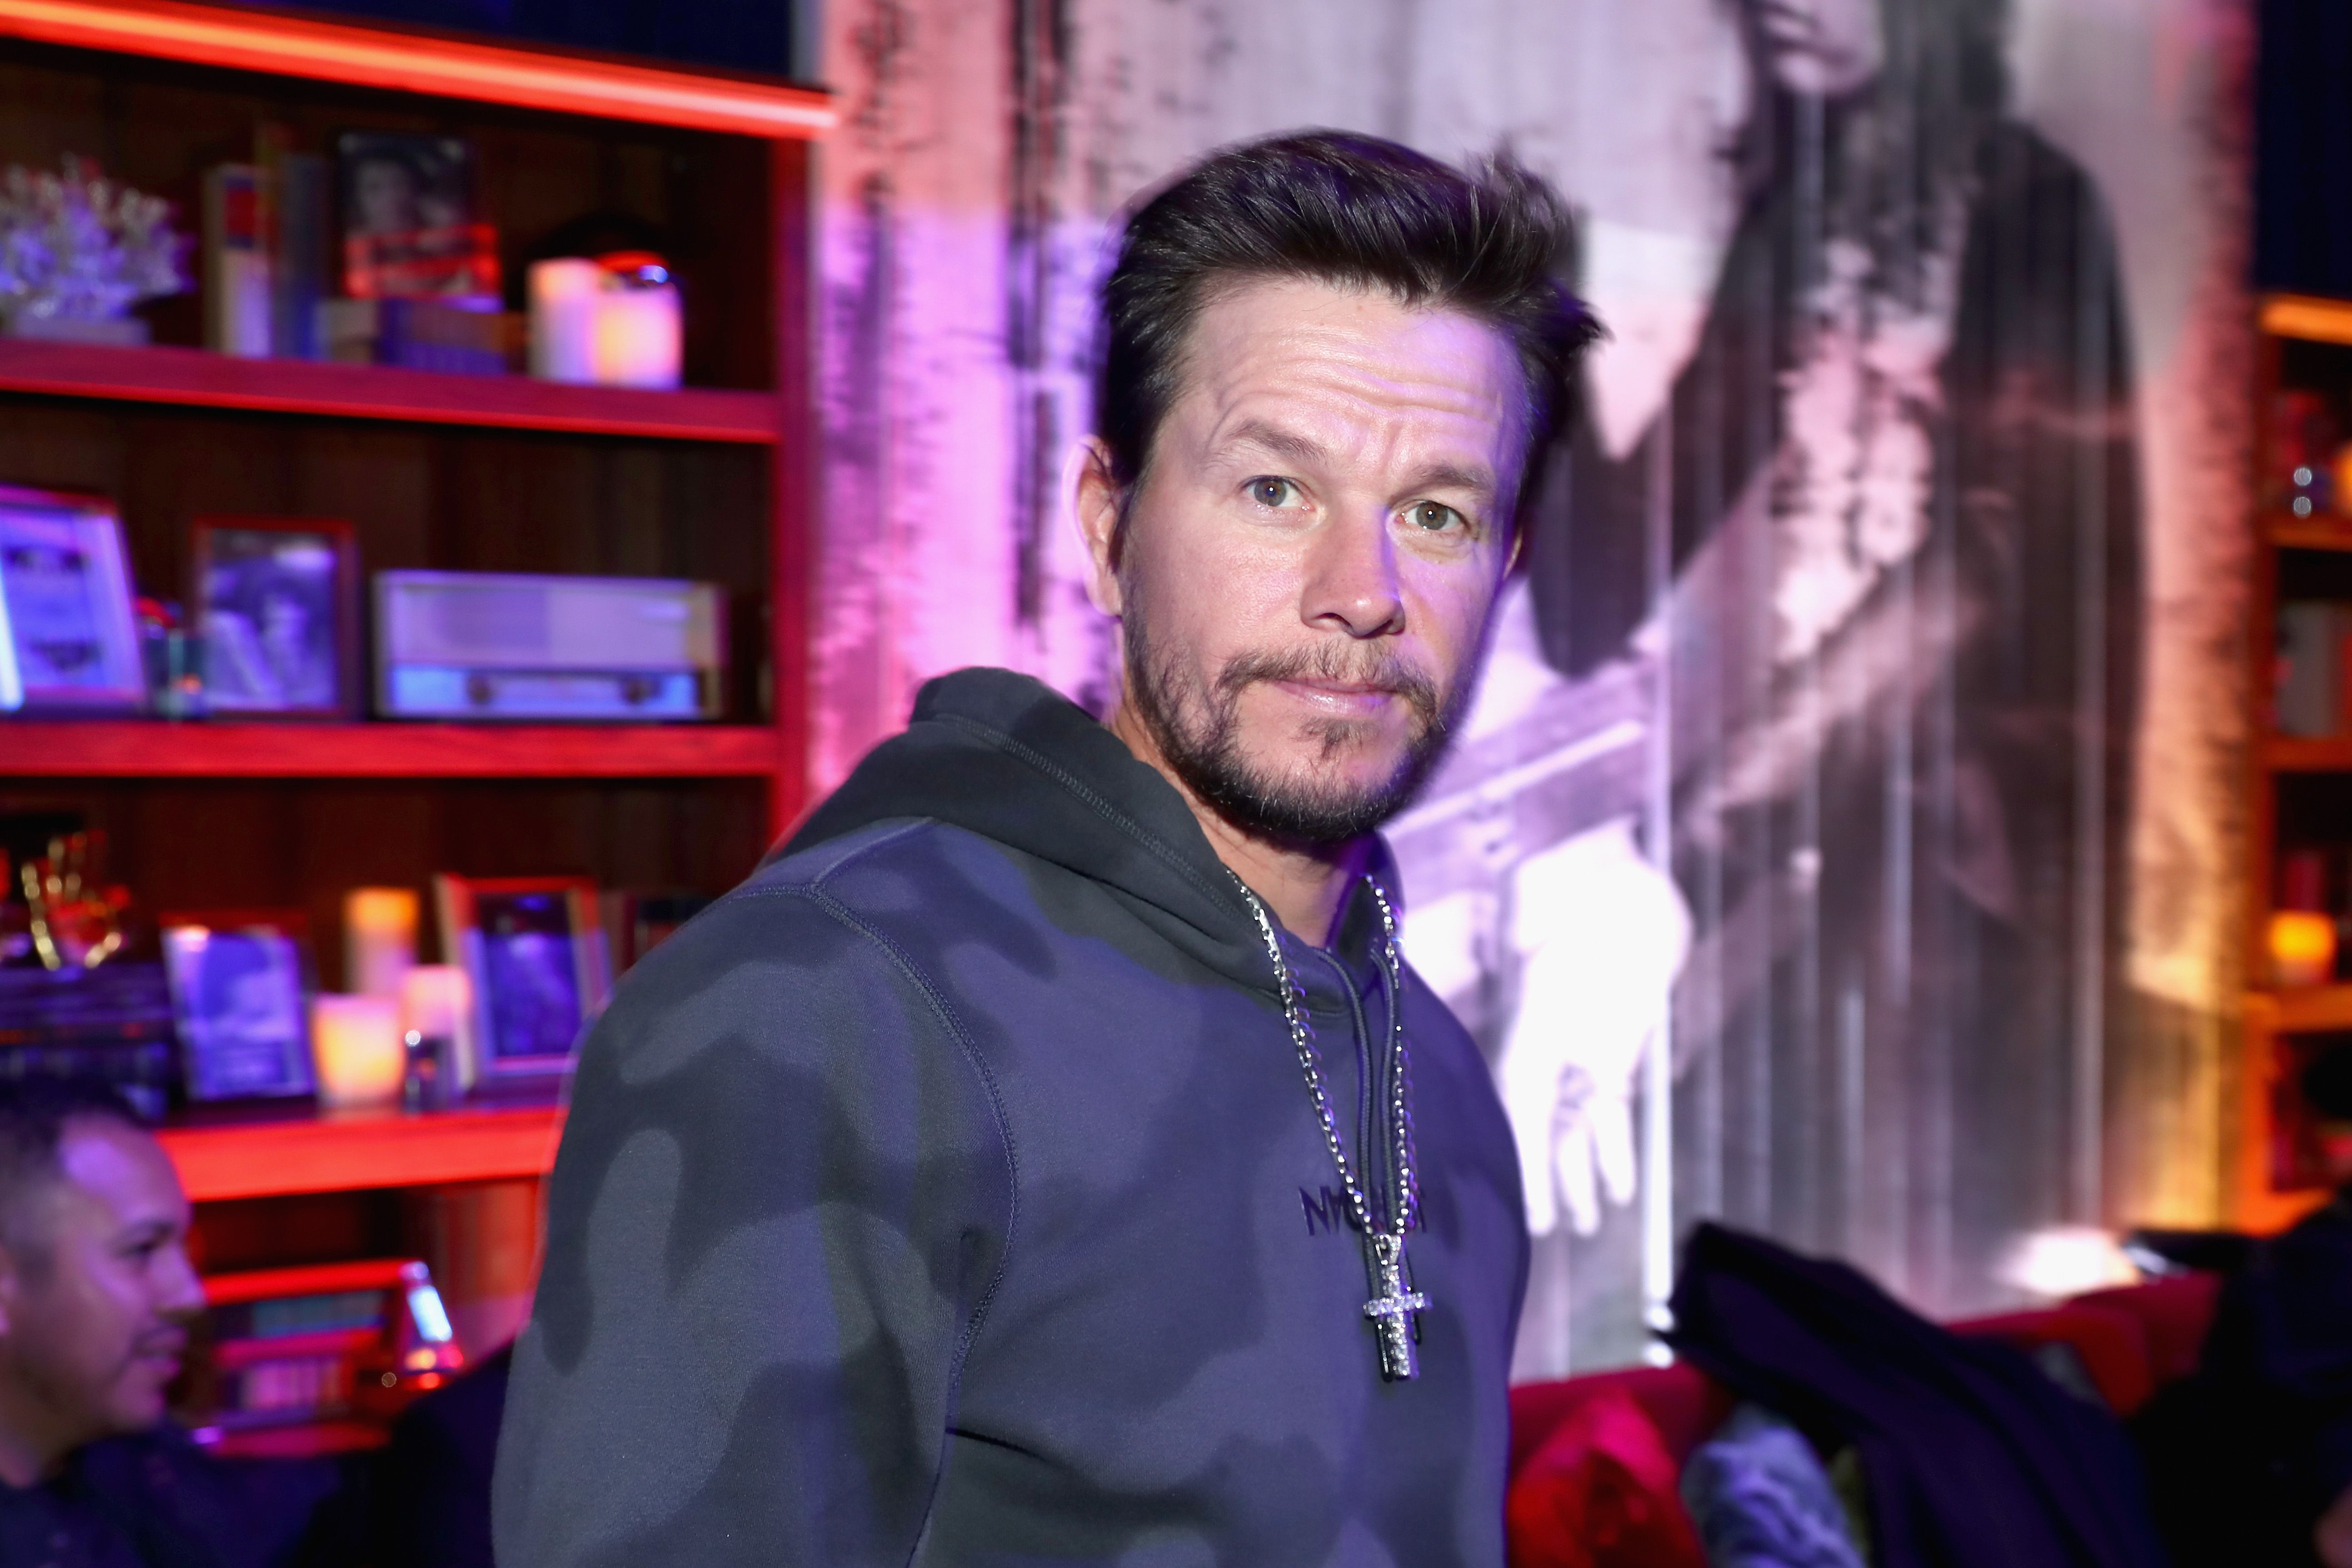 Mark Wahlberg wears a gray hoodie and silver cross.